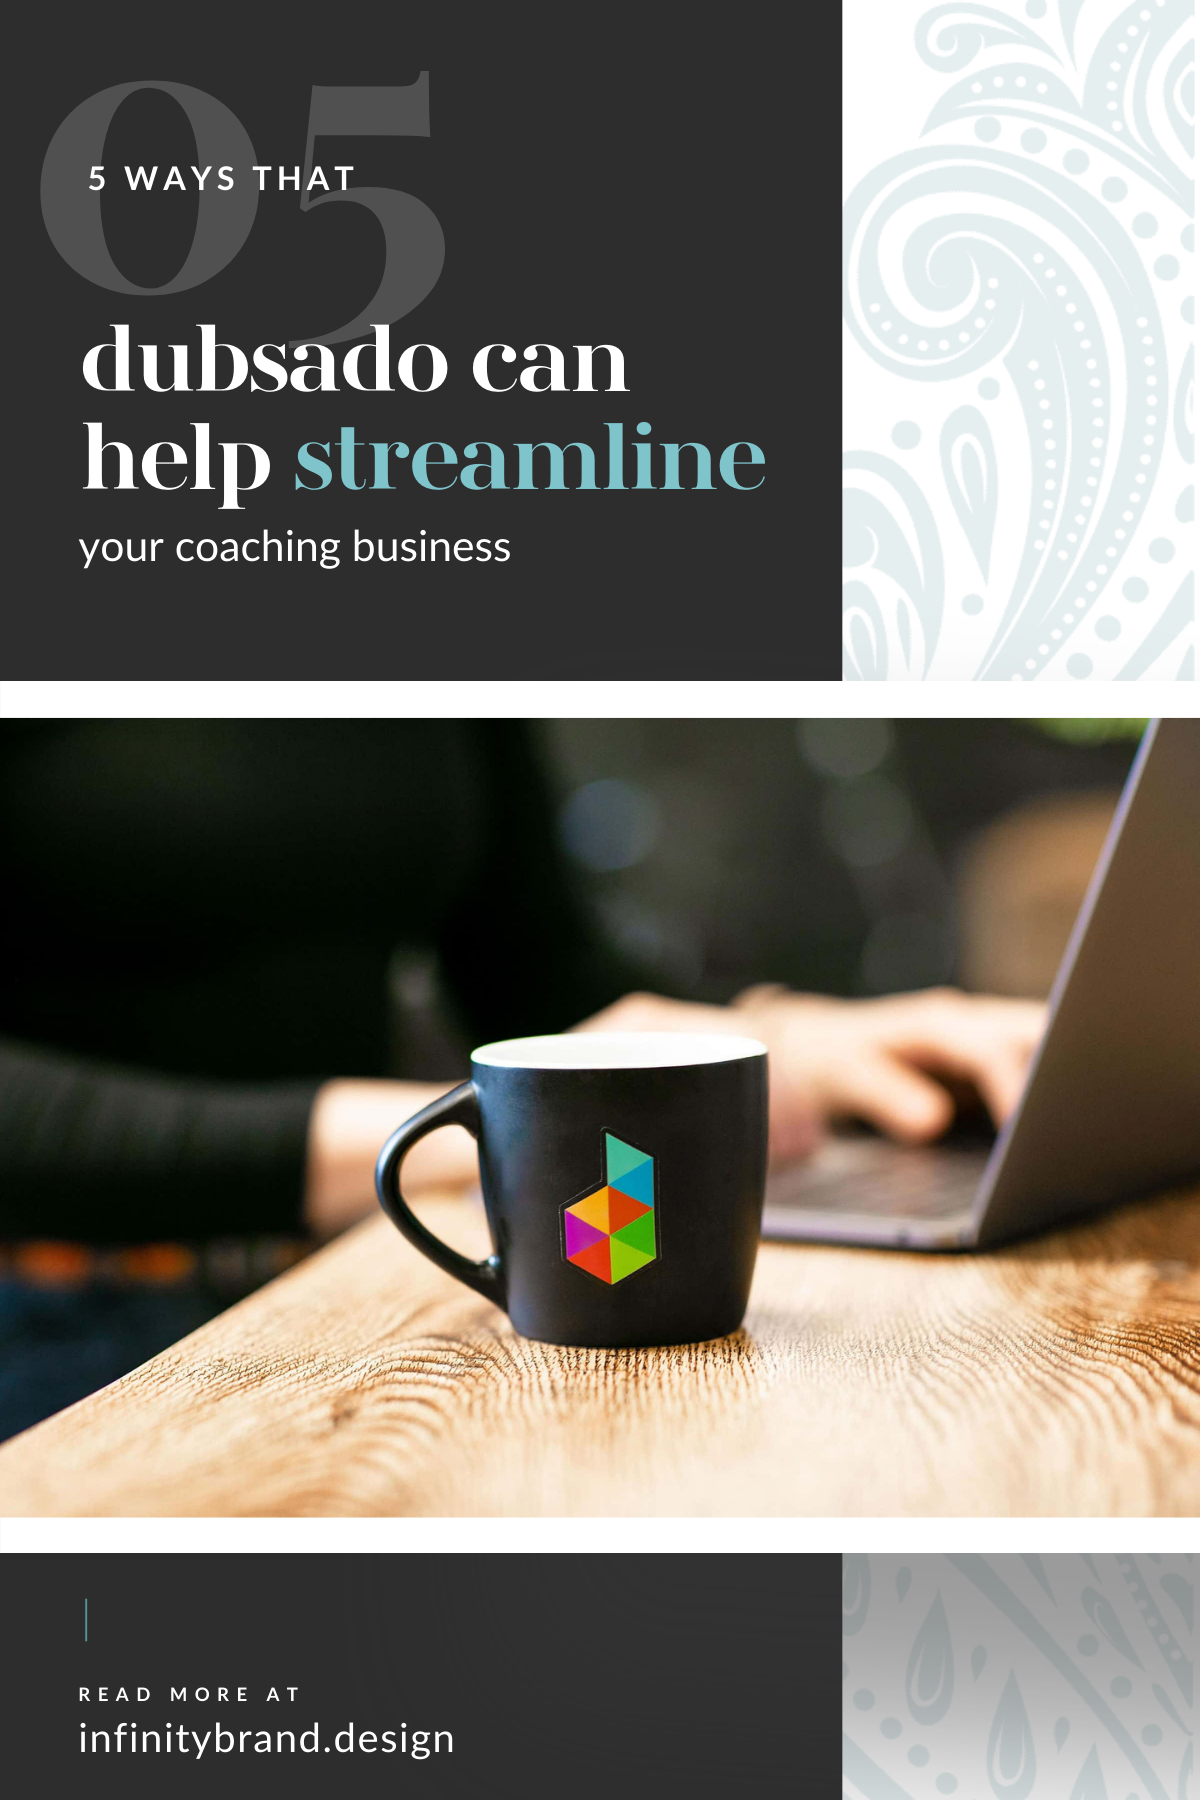 Dubsado can help create efficiencies in your coaching business and your client management process. Read on to find out how.